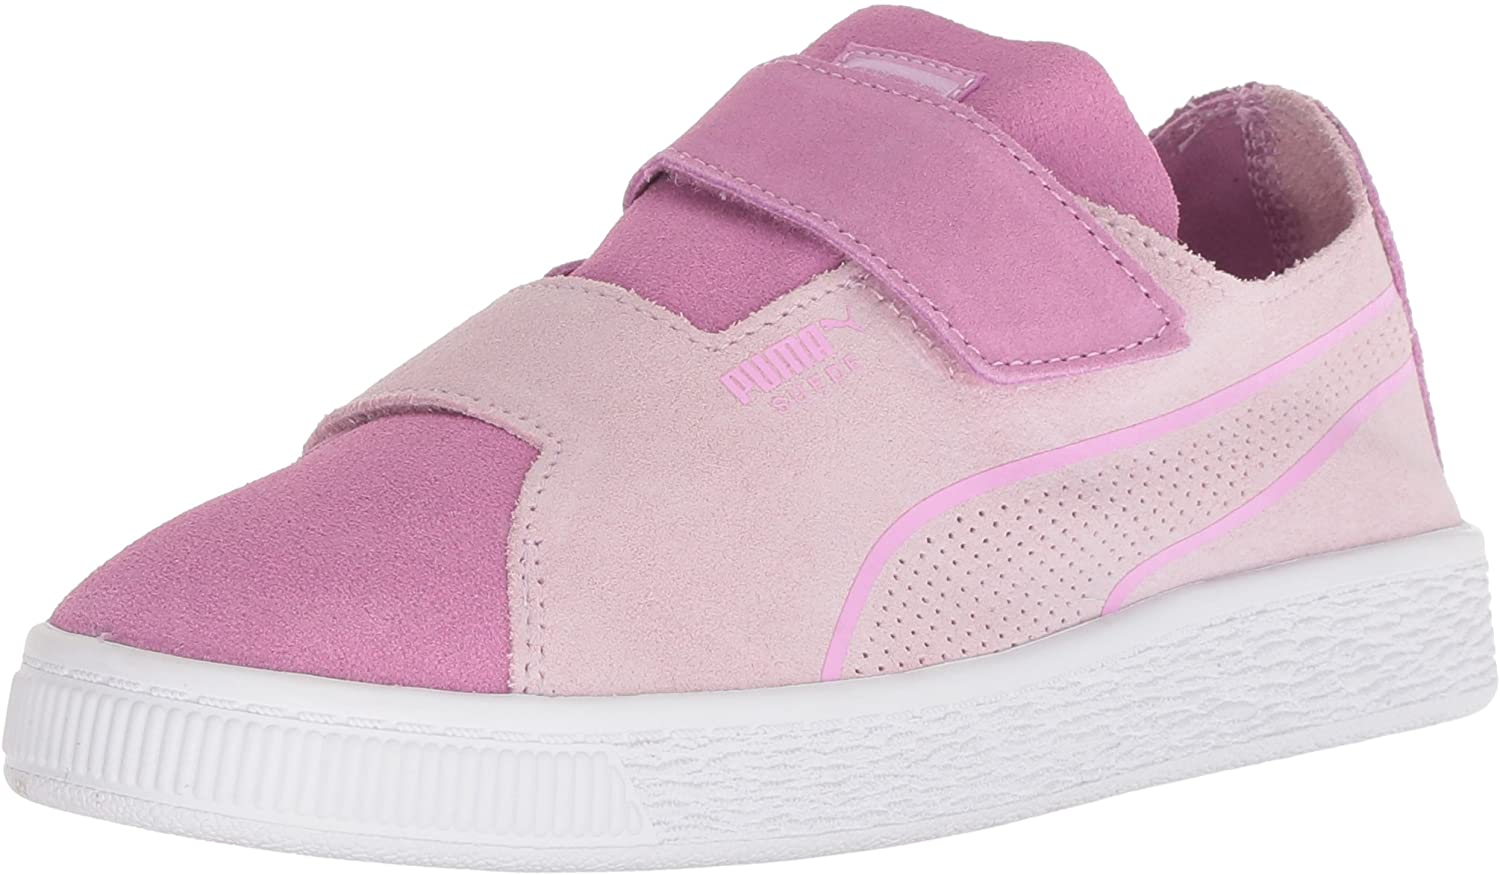 PUMA Kids' Suede Deconstruct Hook and Loop Sneaker, Winsome Orchid-Orchid, 1.5 M US Little Kid